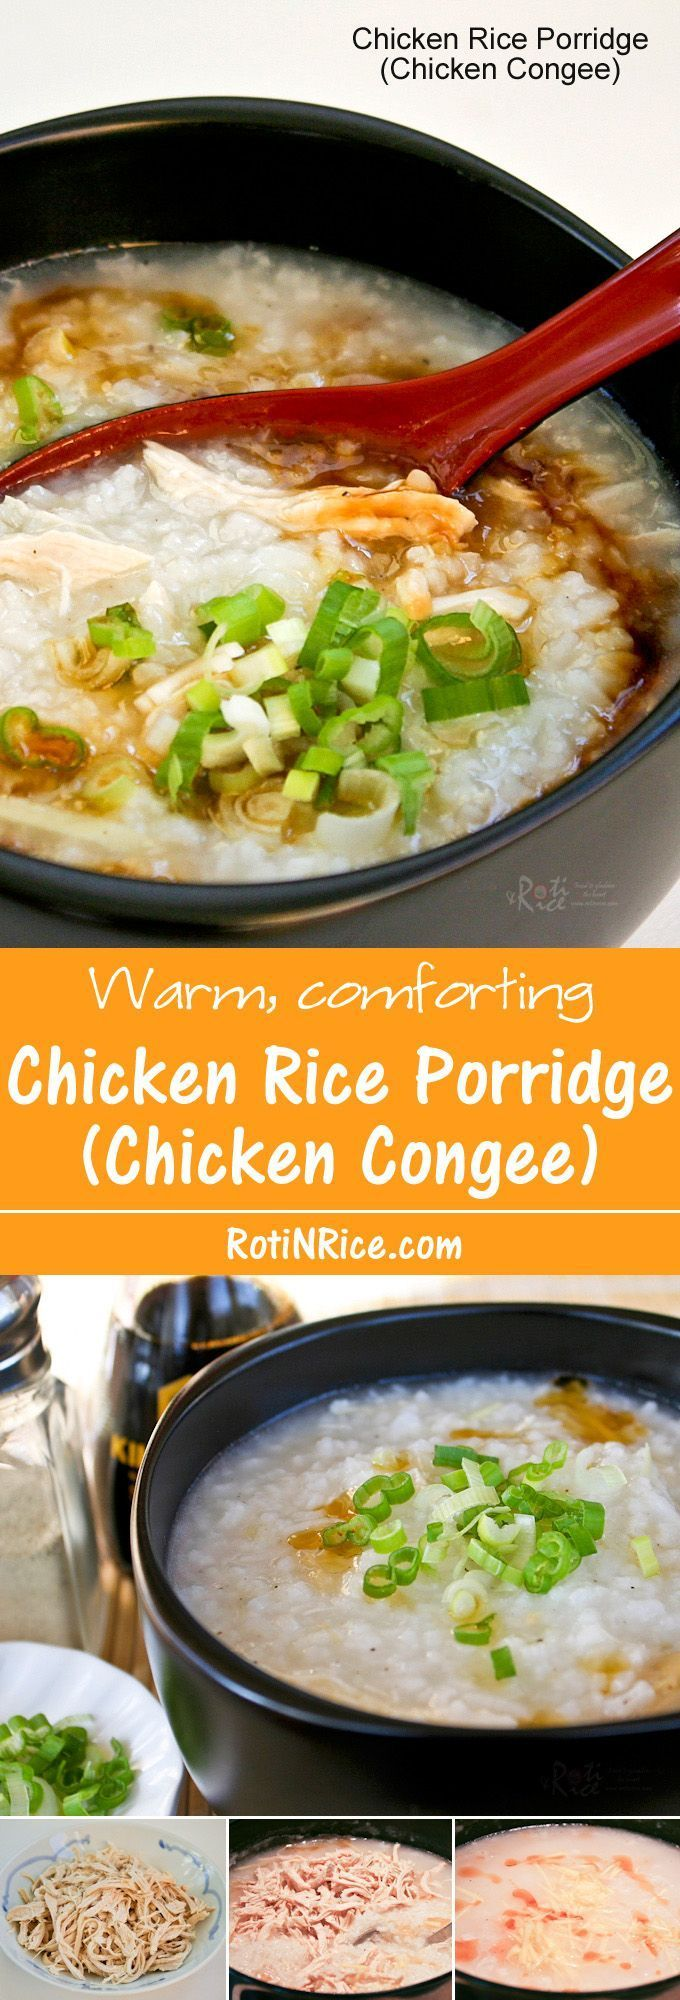 This simple and tasty Chicken Rice Porridge (Chicken Congee) is so easy to prepare. It makes a delicious breakfast and is a bowl of comfort any time of the day.   http://RotiNRice.com